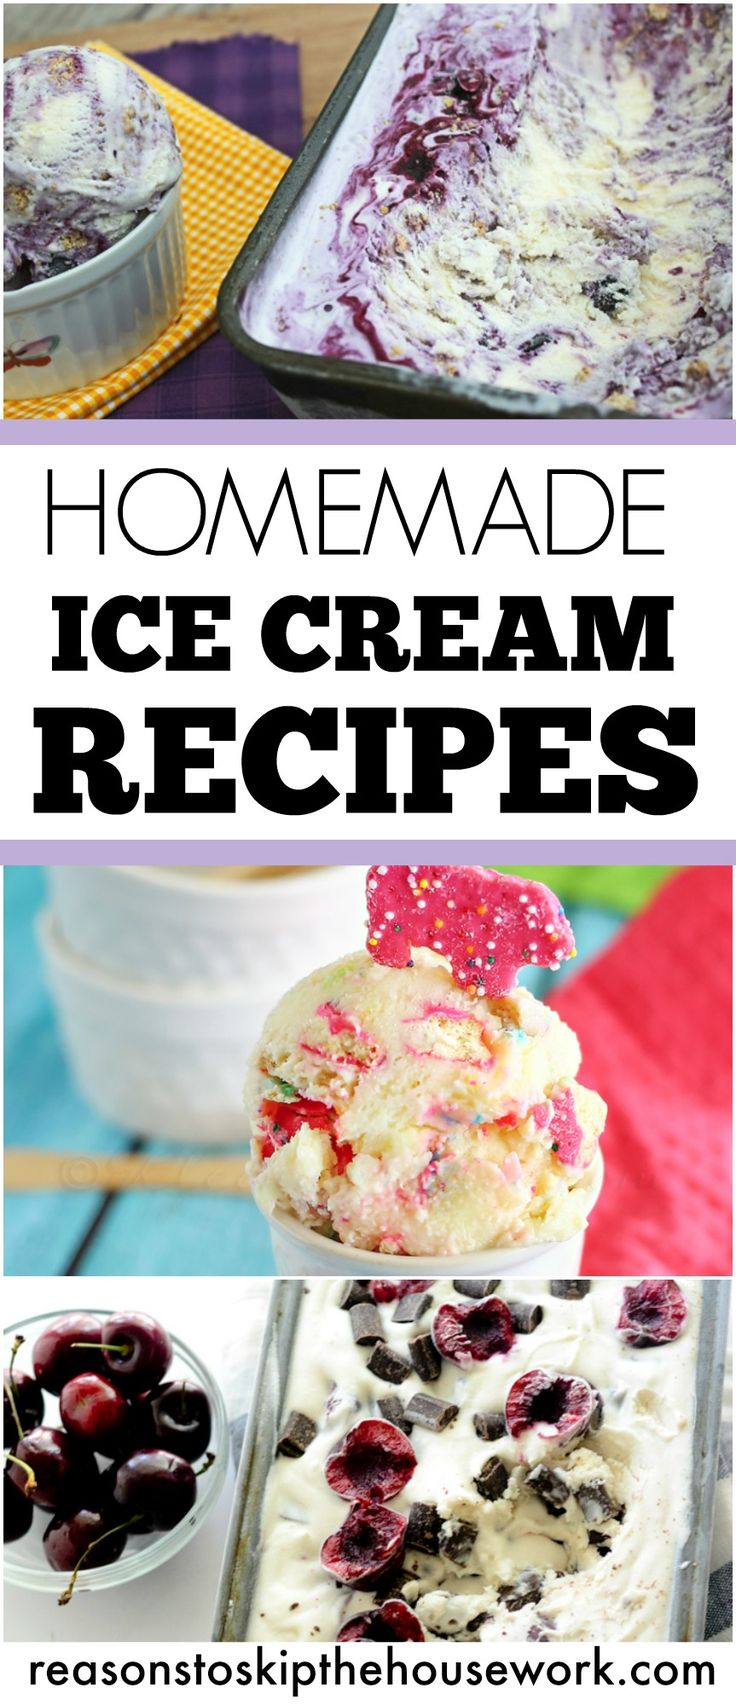 17 best images about ice cream recipes on pinterest ice for How to make delicious ice cream at home